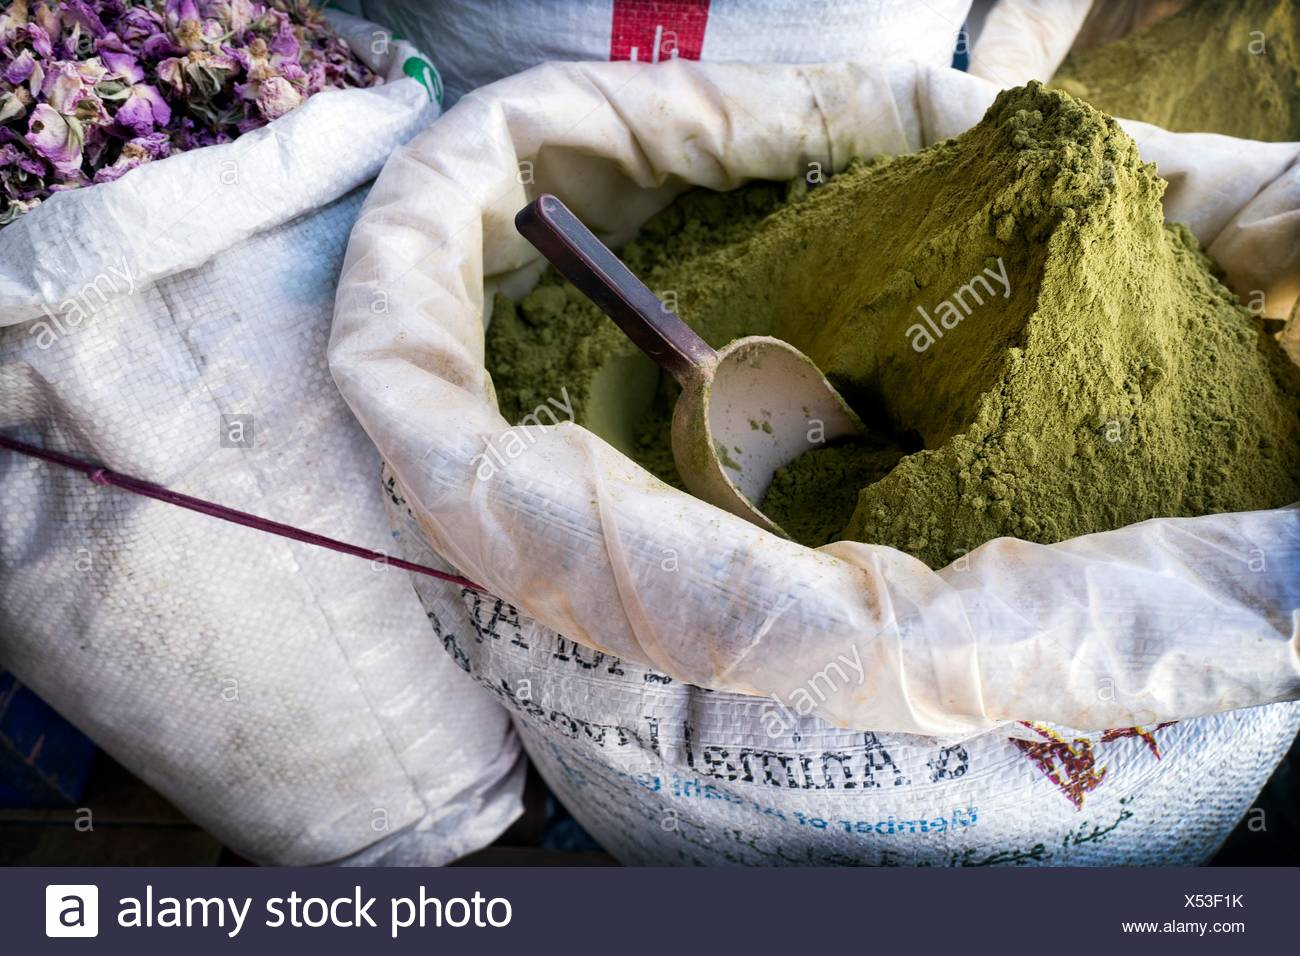 Sacks with henna for hair dying. Chaouen, Morocco - Stock Image